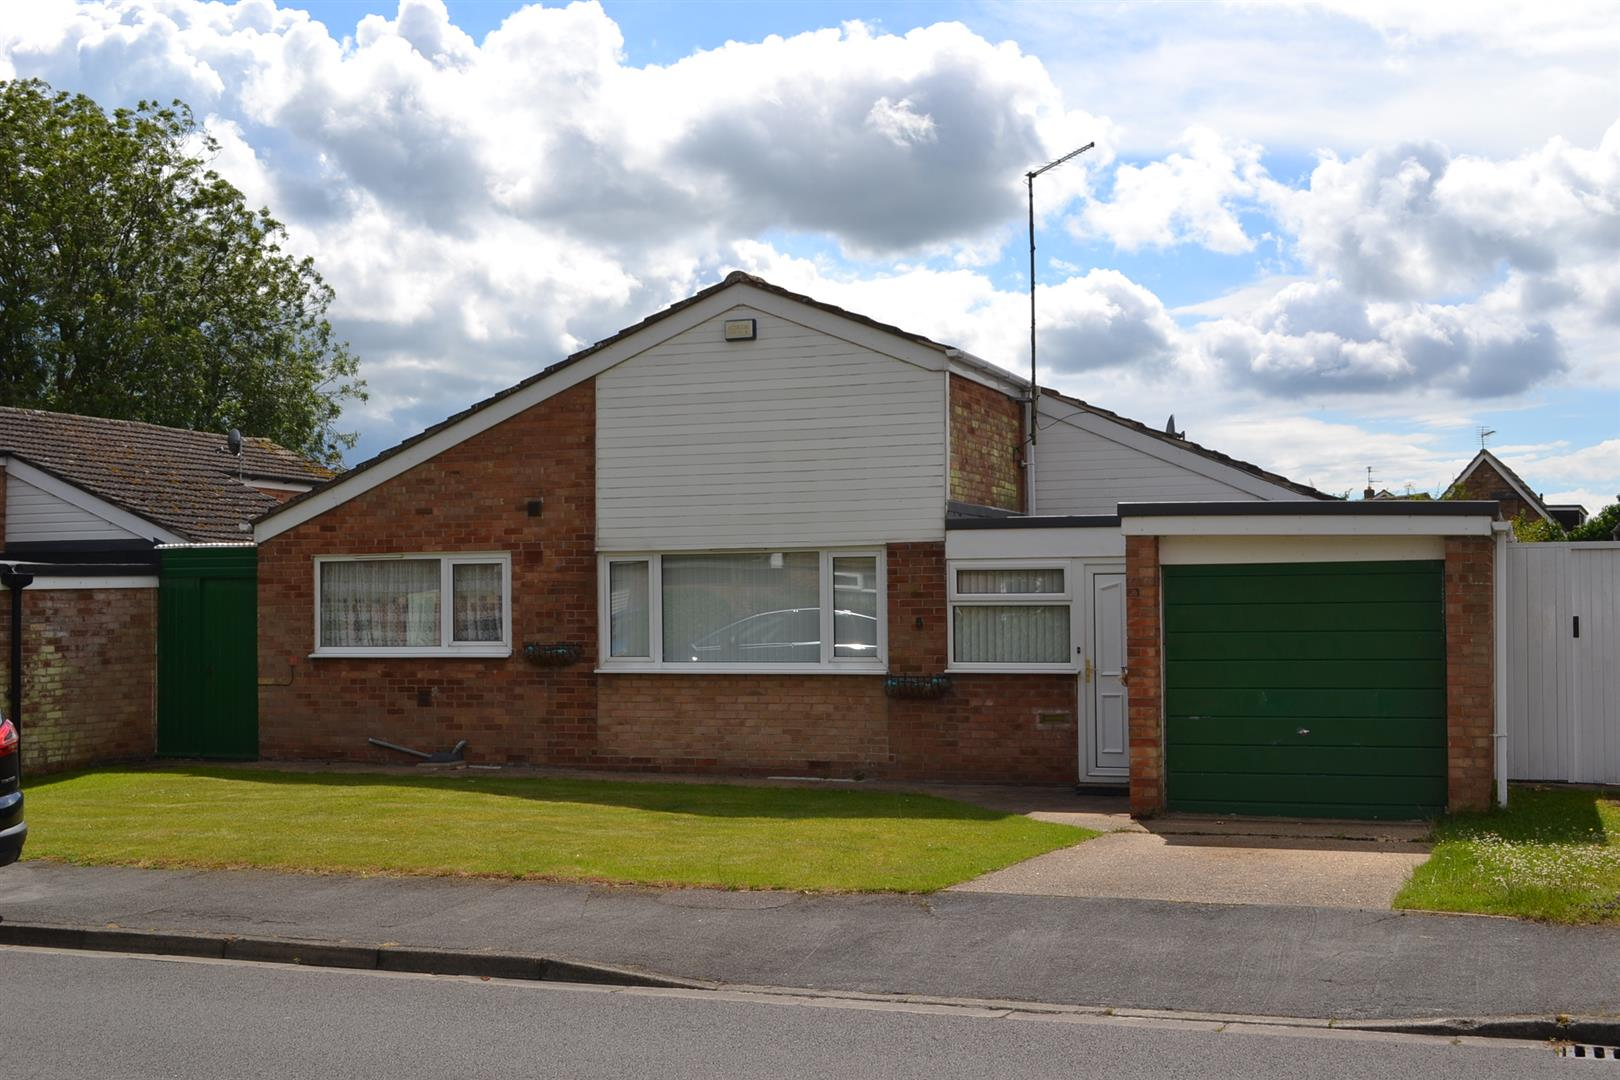 Ancaster Drive, Sleaford